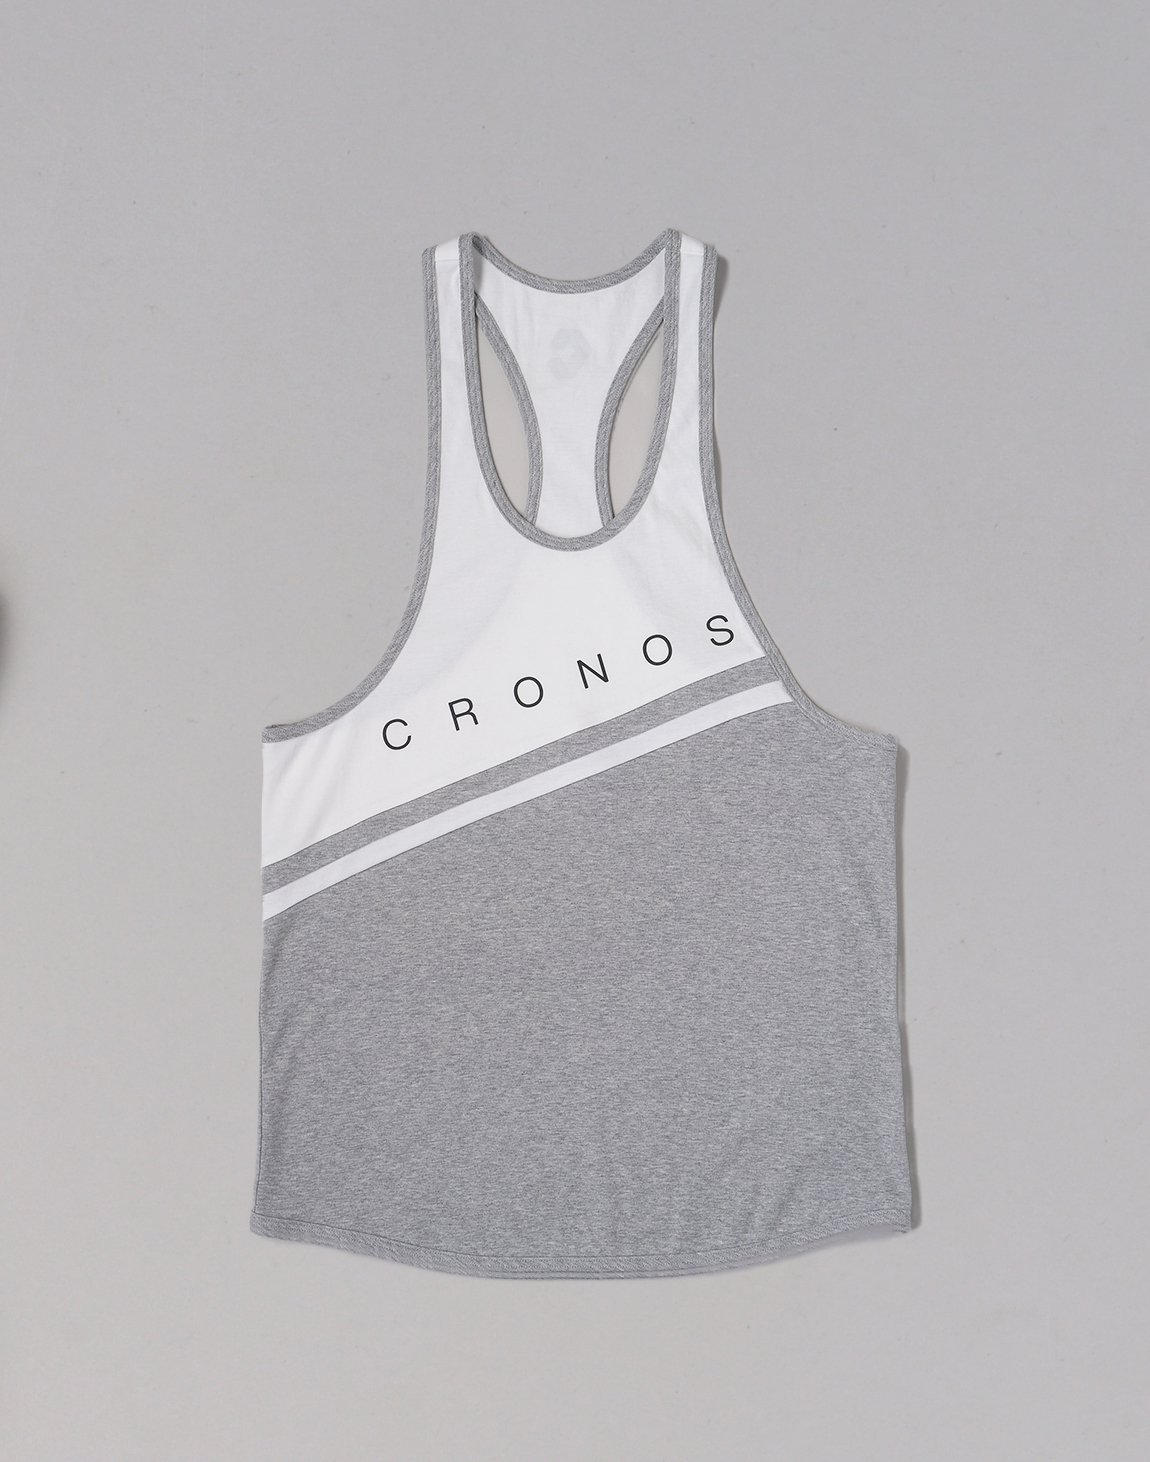 <img class='new_mark_img1' src='https://img.shop-pro.jp/img/new/icons1.gif' style='border:none;display:inline;margin:0px;padding:0px;width:auto;' />CRONOS Bi-COLOR LINE TANKTOP【GRAY】